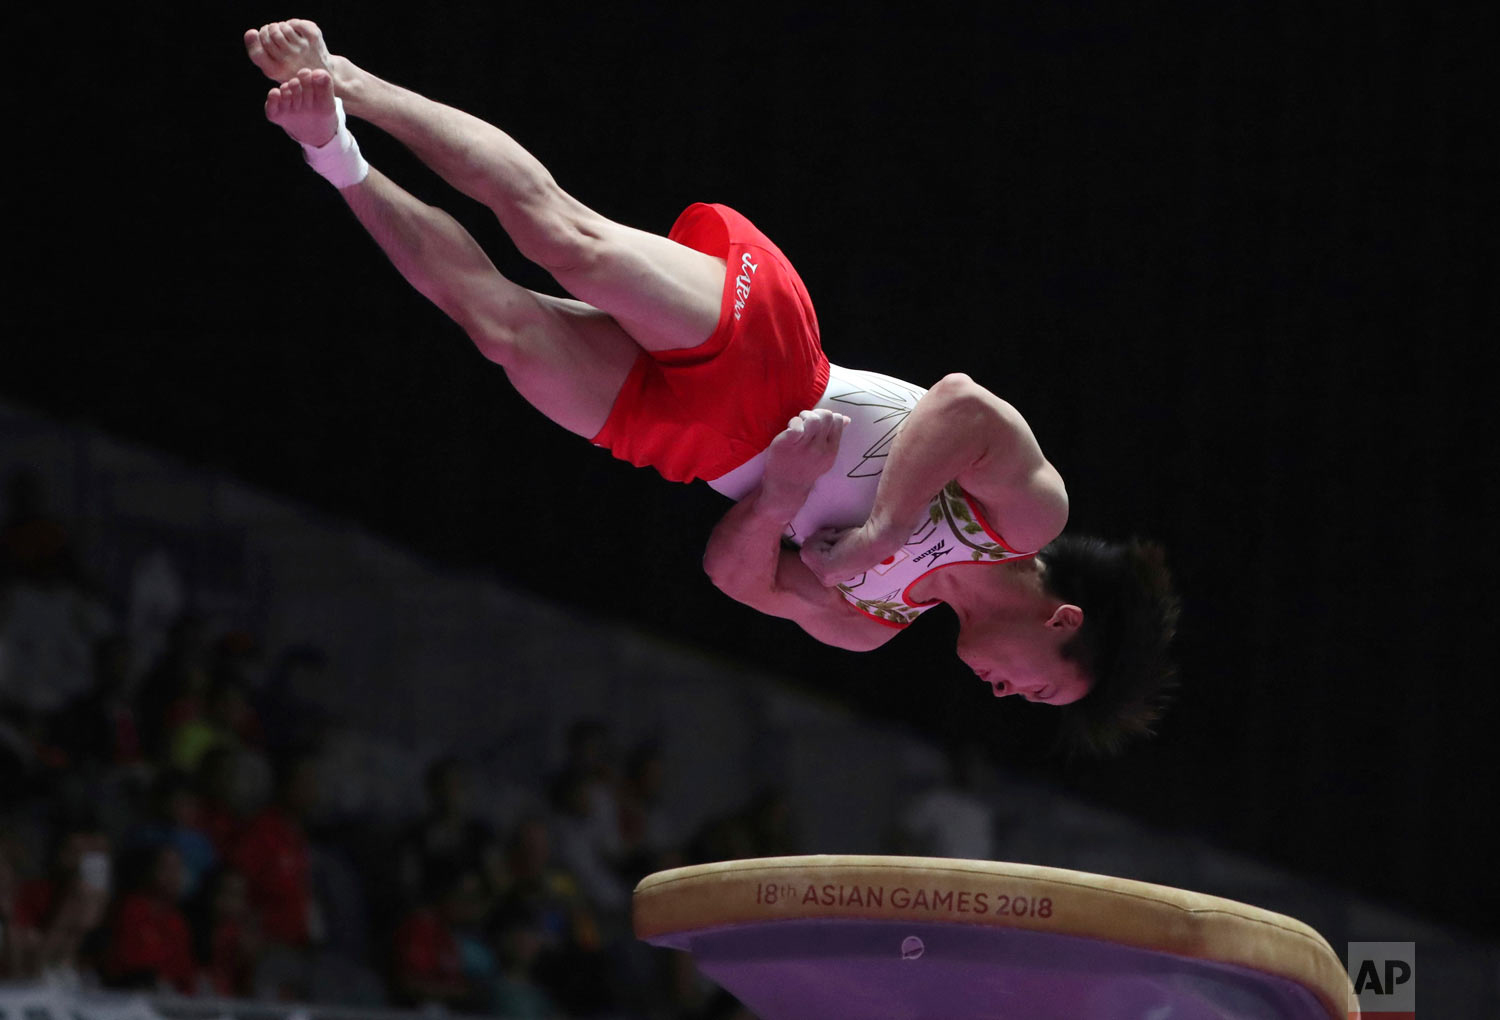 Japan's Fuya Maeno competes on the vault during the men's individual all-around gymnastics competition at the 18th Asian Games in Jakarta, Indonesia, Monday, Aug. 20, 2018. (AP Photo/Dita Alangkara)